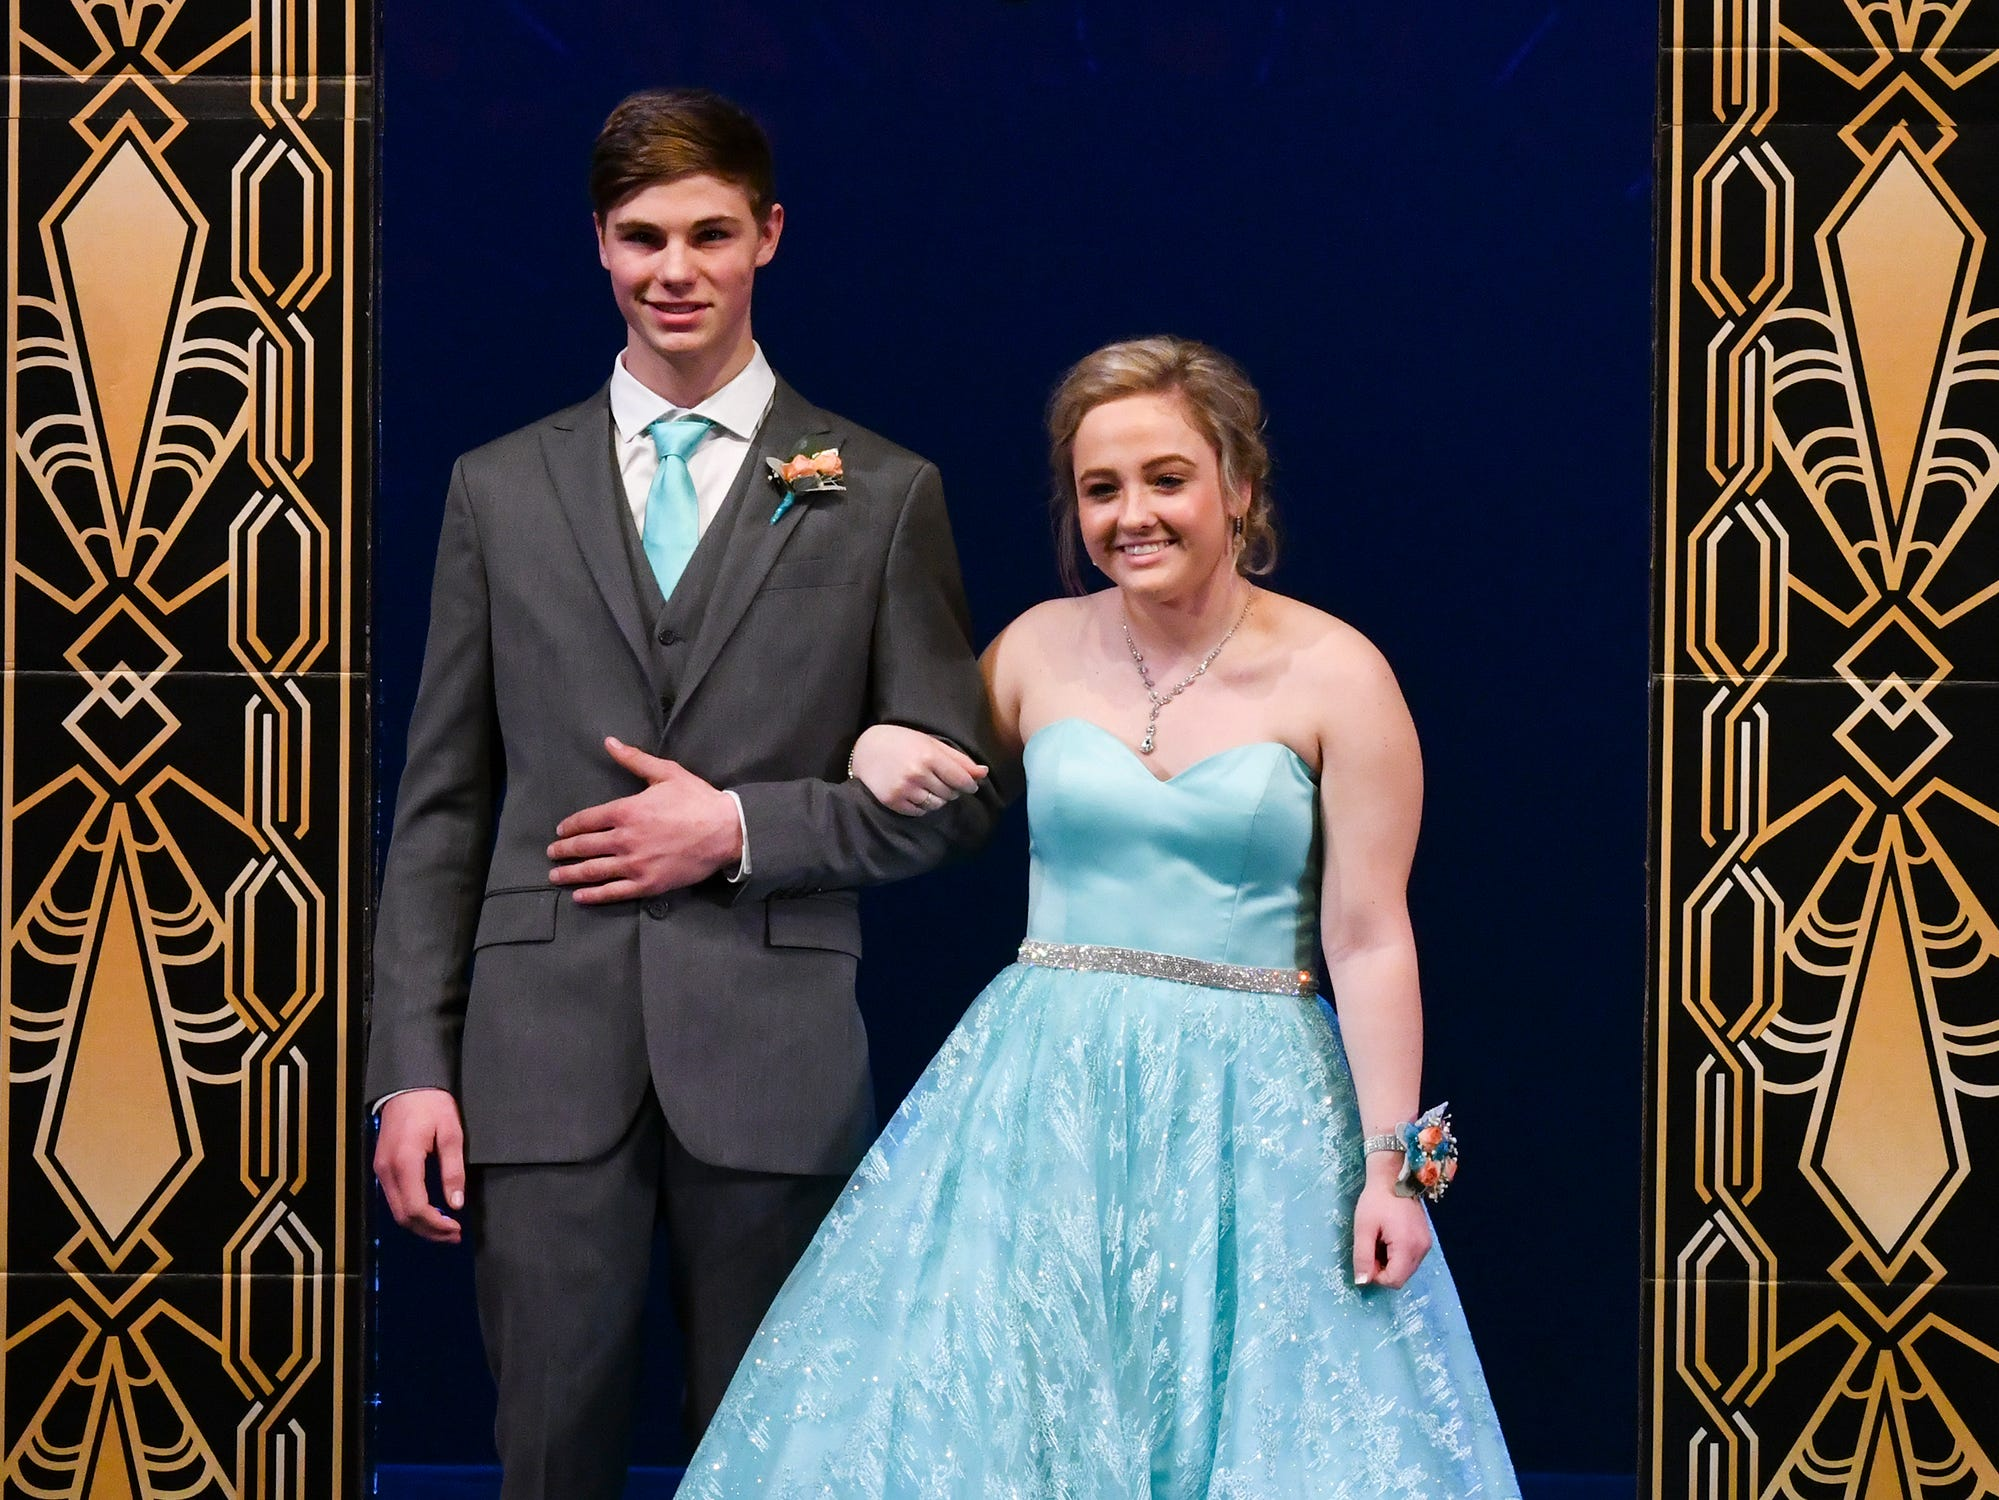 Brianna Helton and Peyton Linn take their turn during prom grand march Saturday, April 6, at Albany High School.